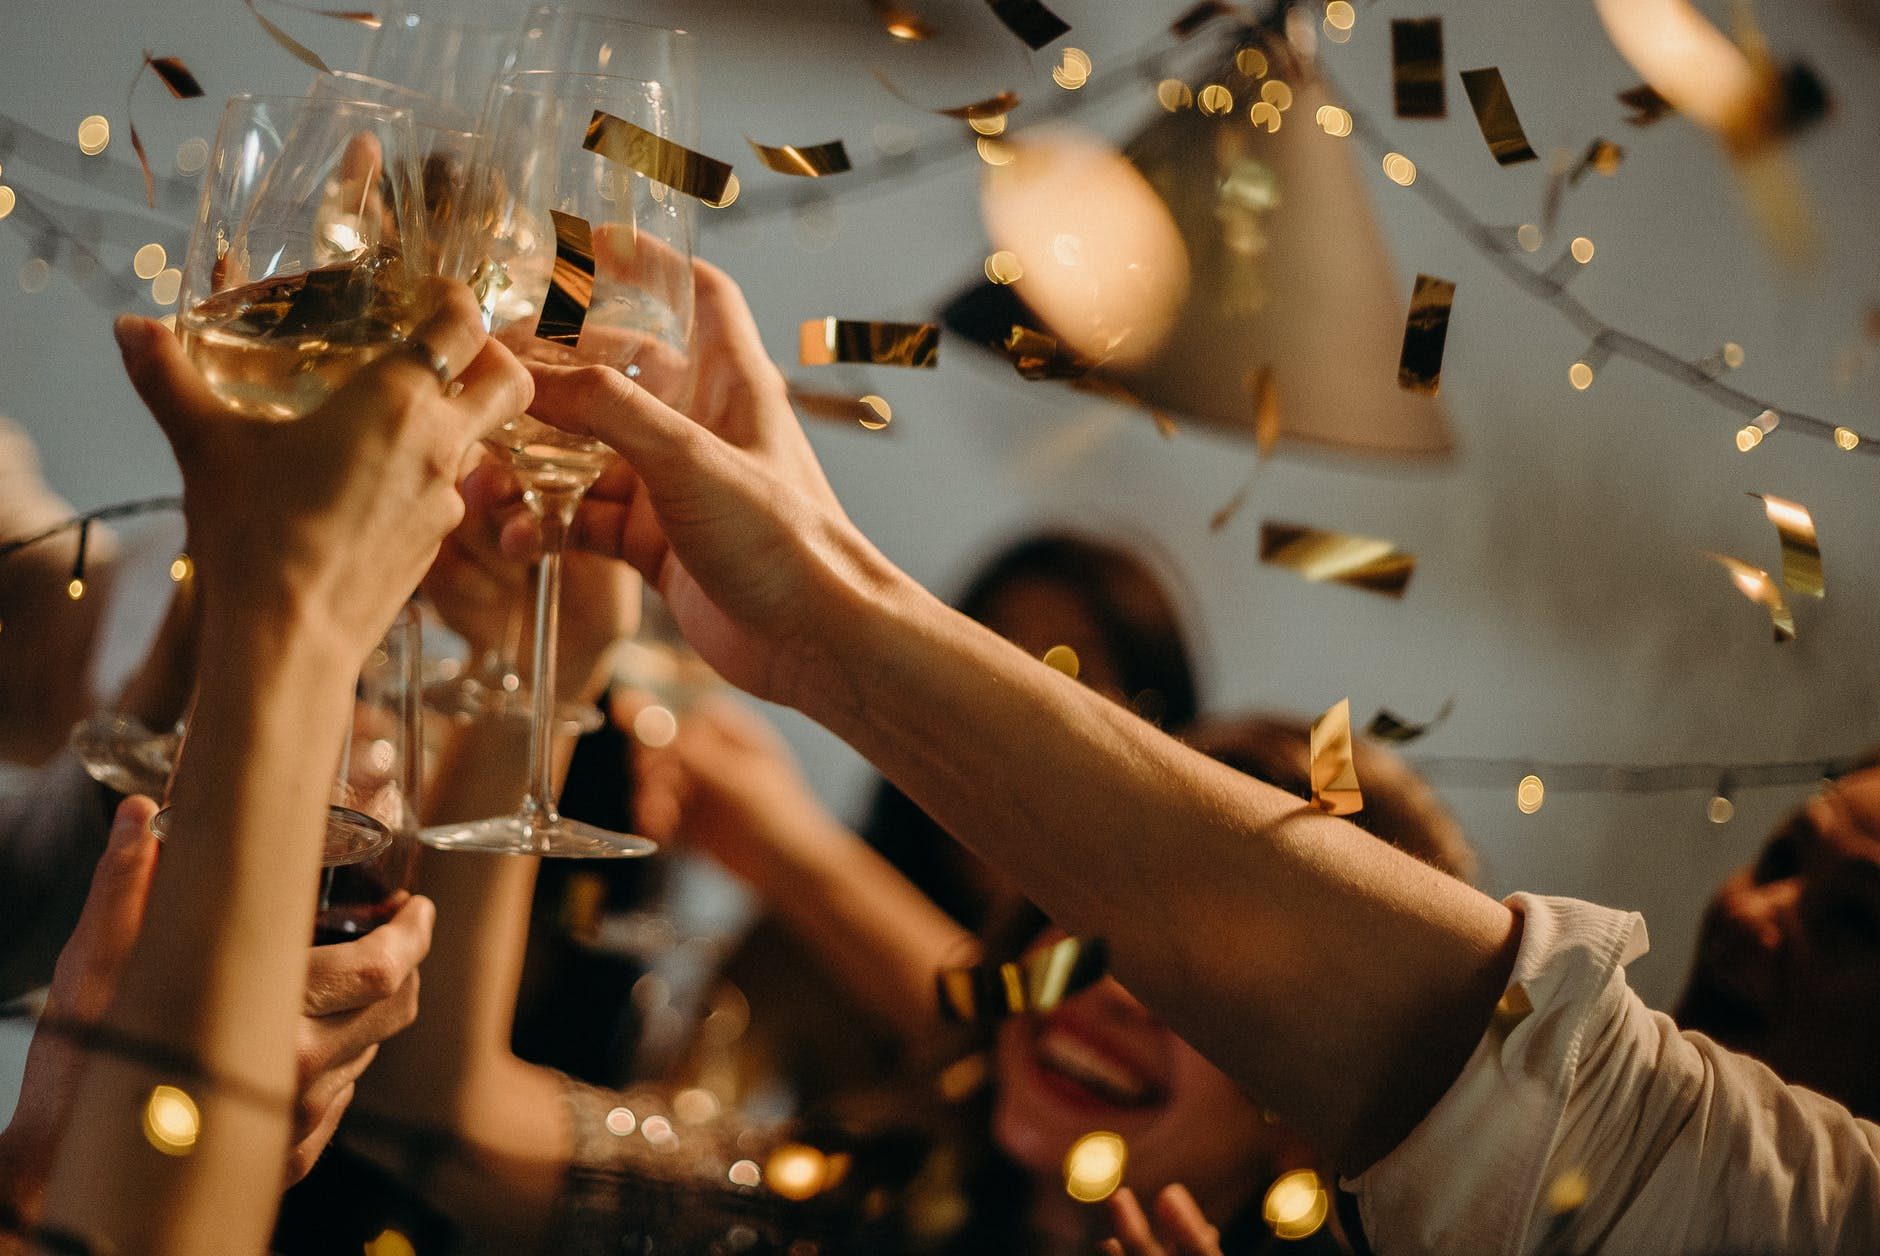 Happy New Year (+ 10 Things to Leave Behind in the New Decade) blog post by Aspasia S. Bissas